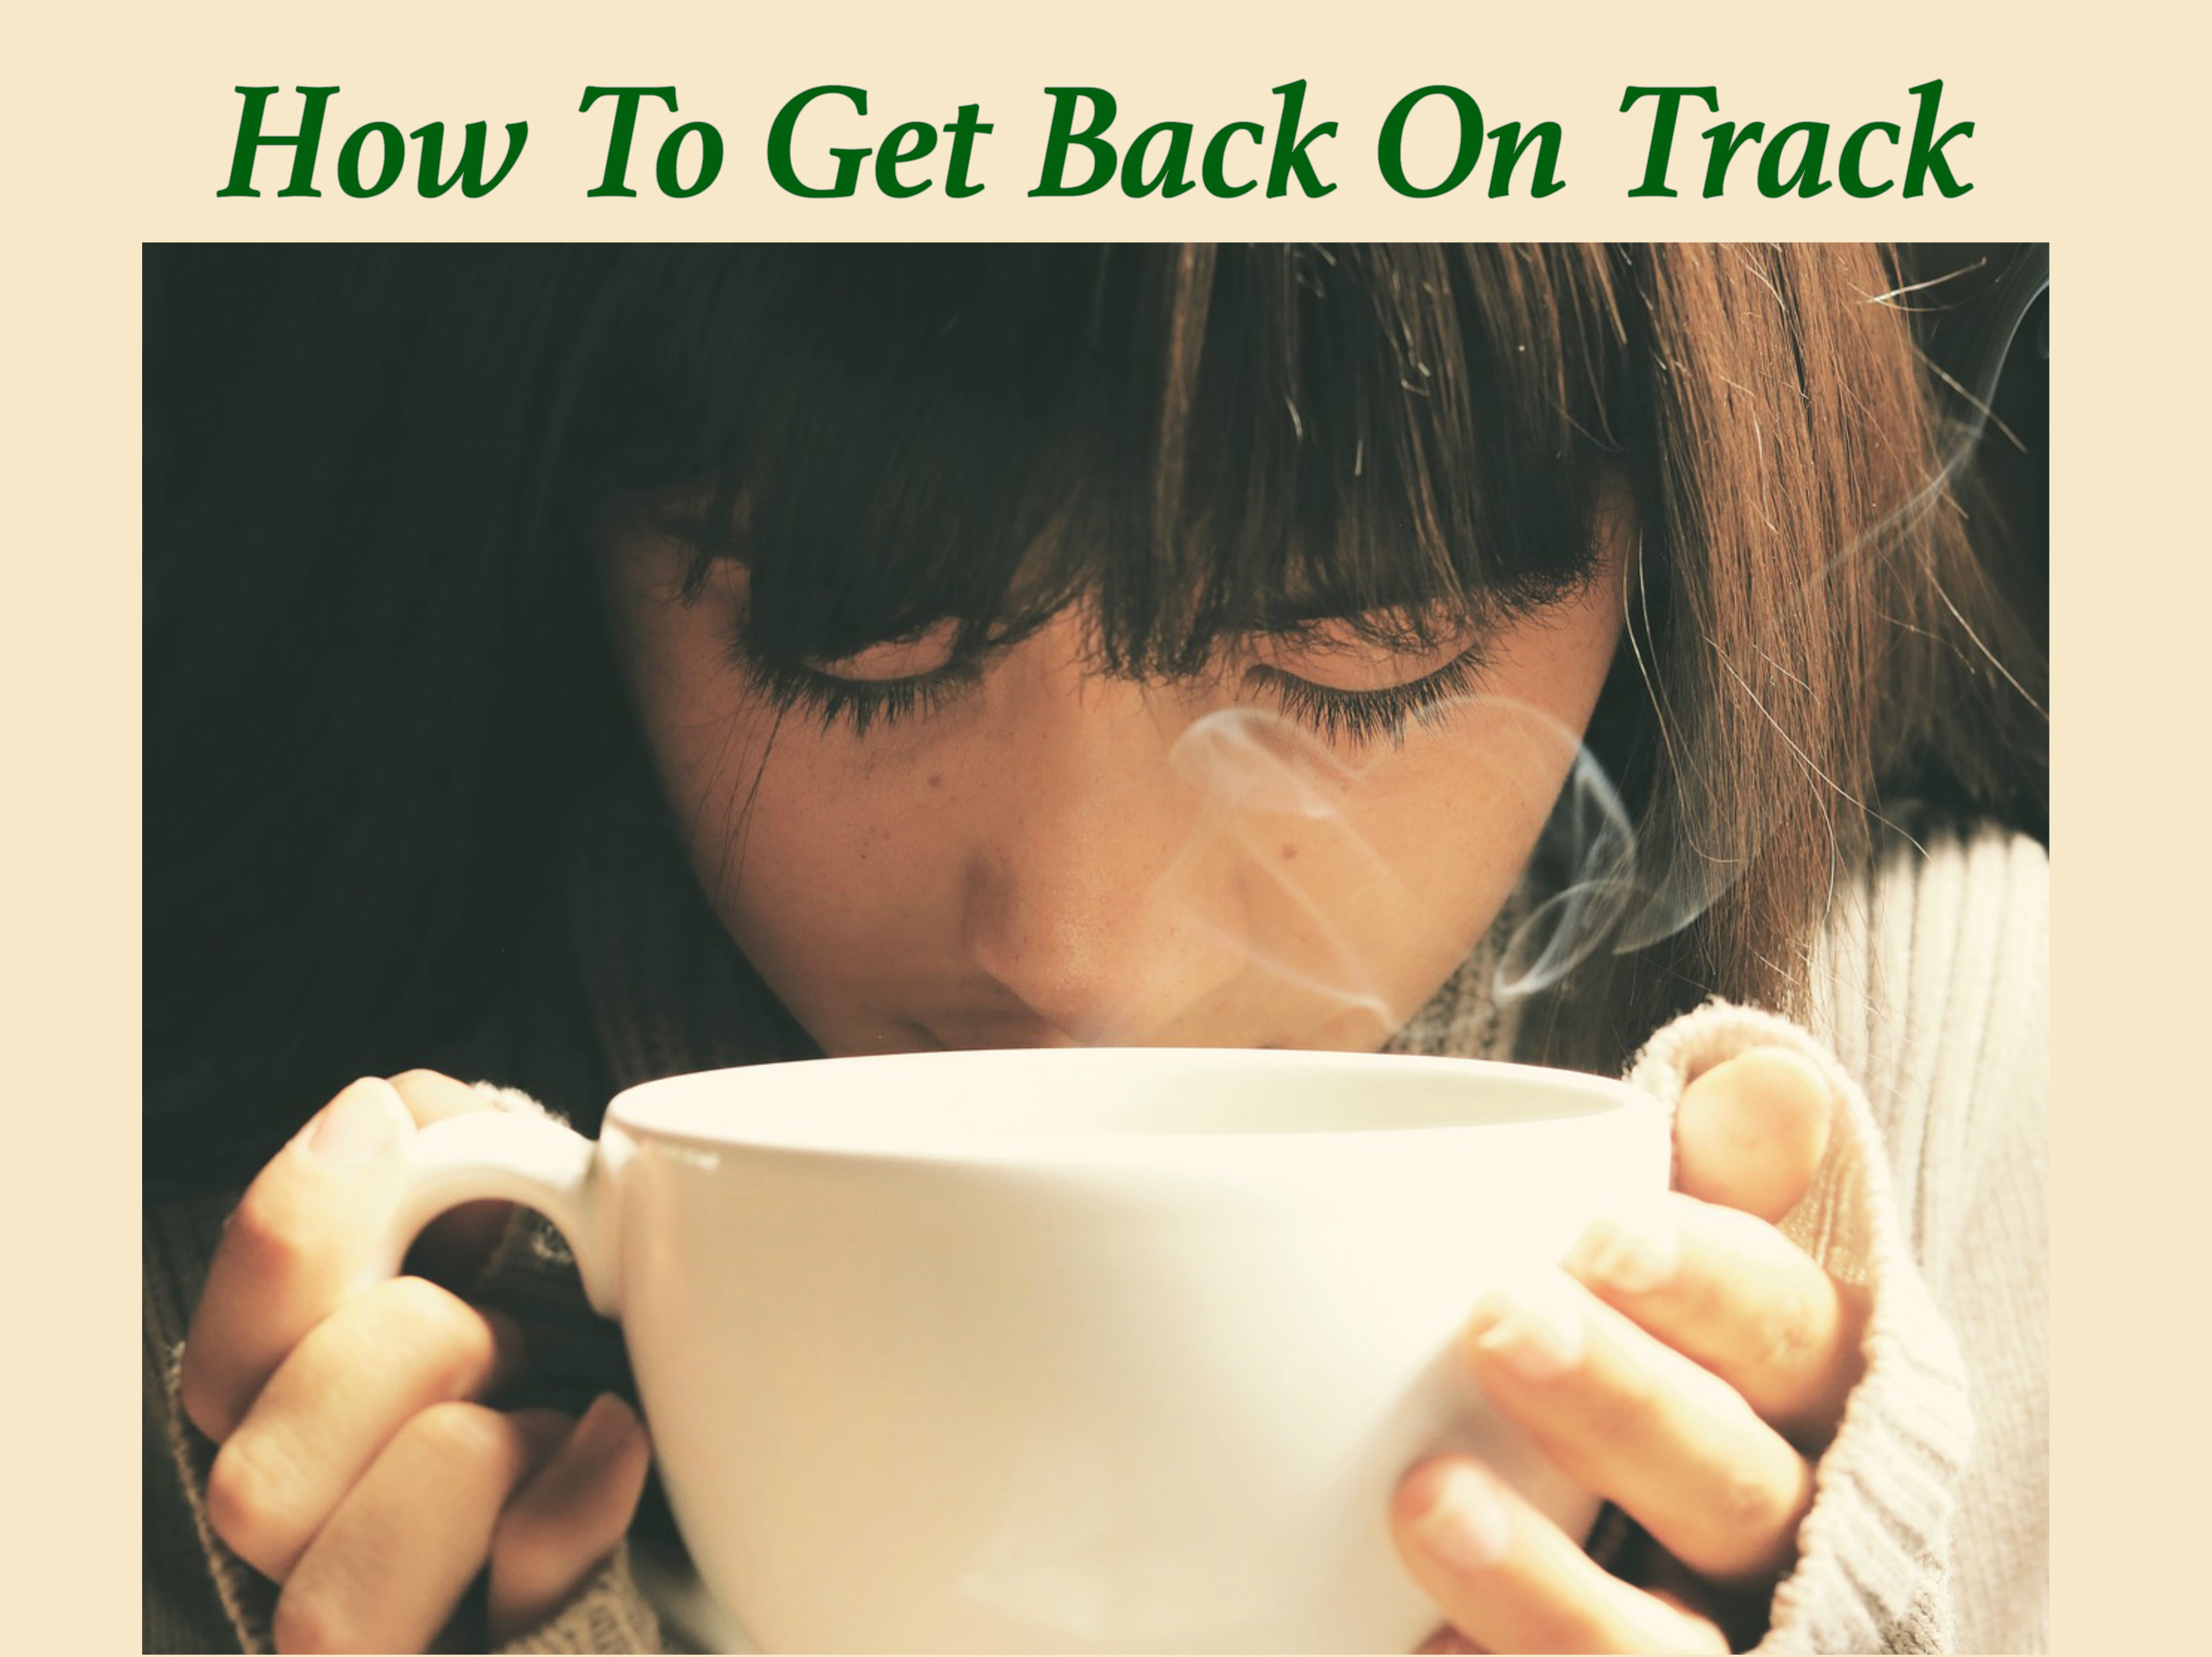 Off the Rails: How To Get Back On Track